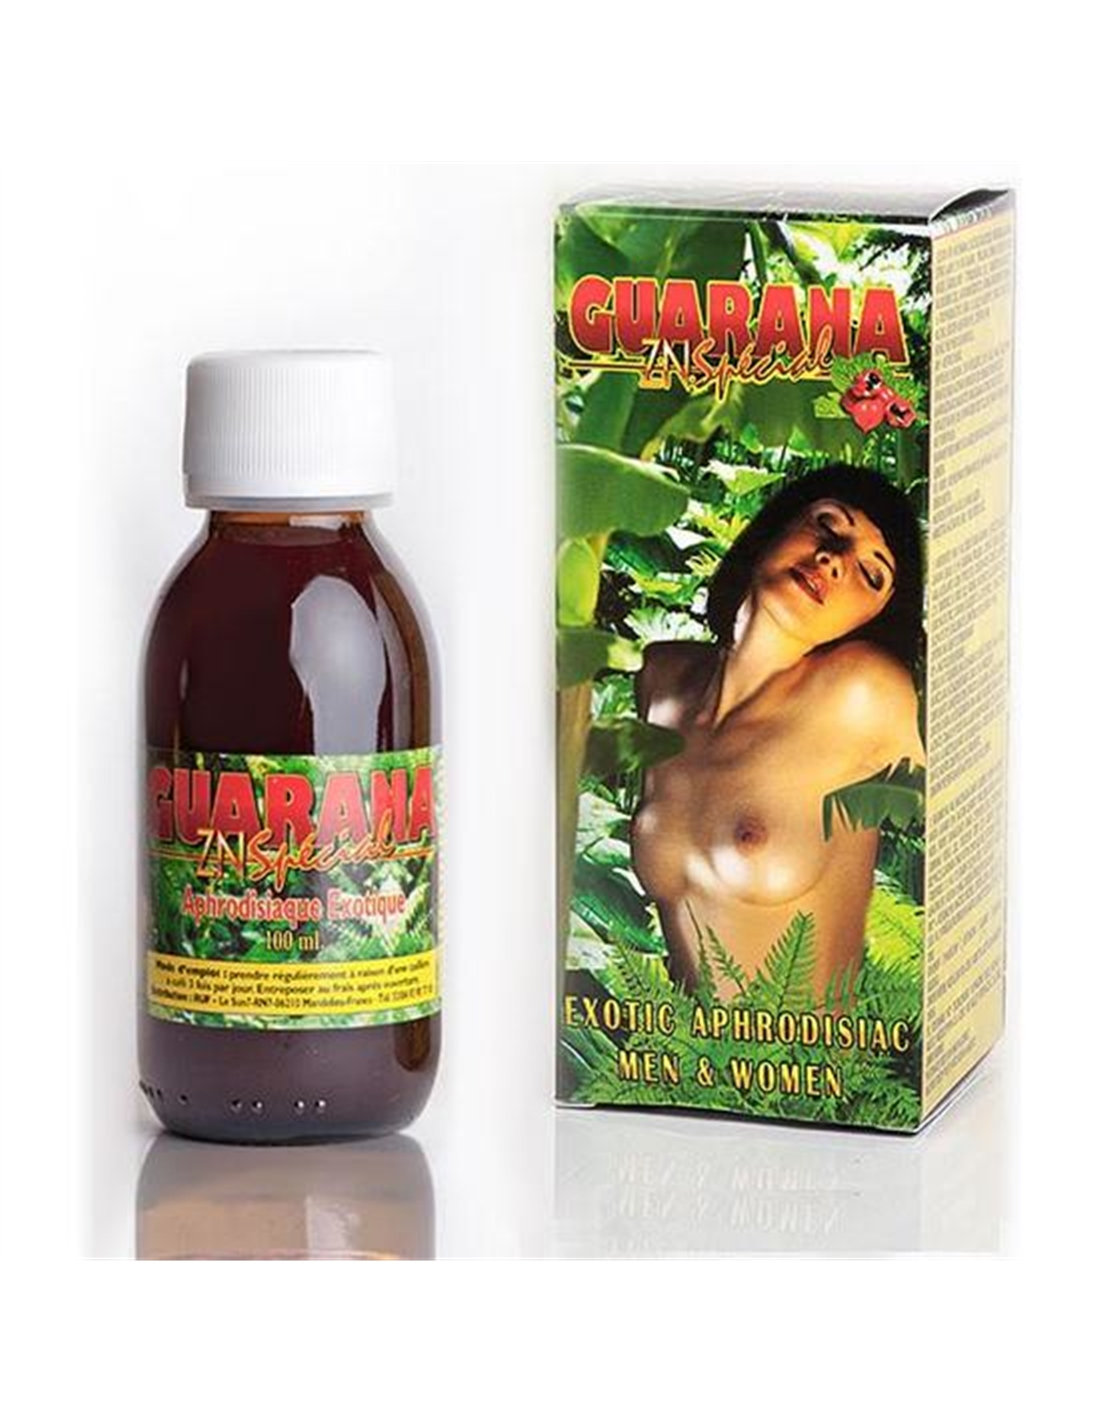 Gotas Guarana Zn Special - 100ml - DO29091511